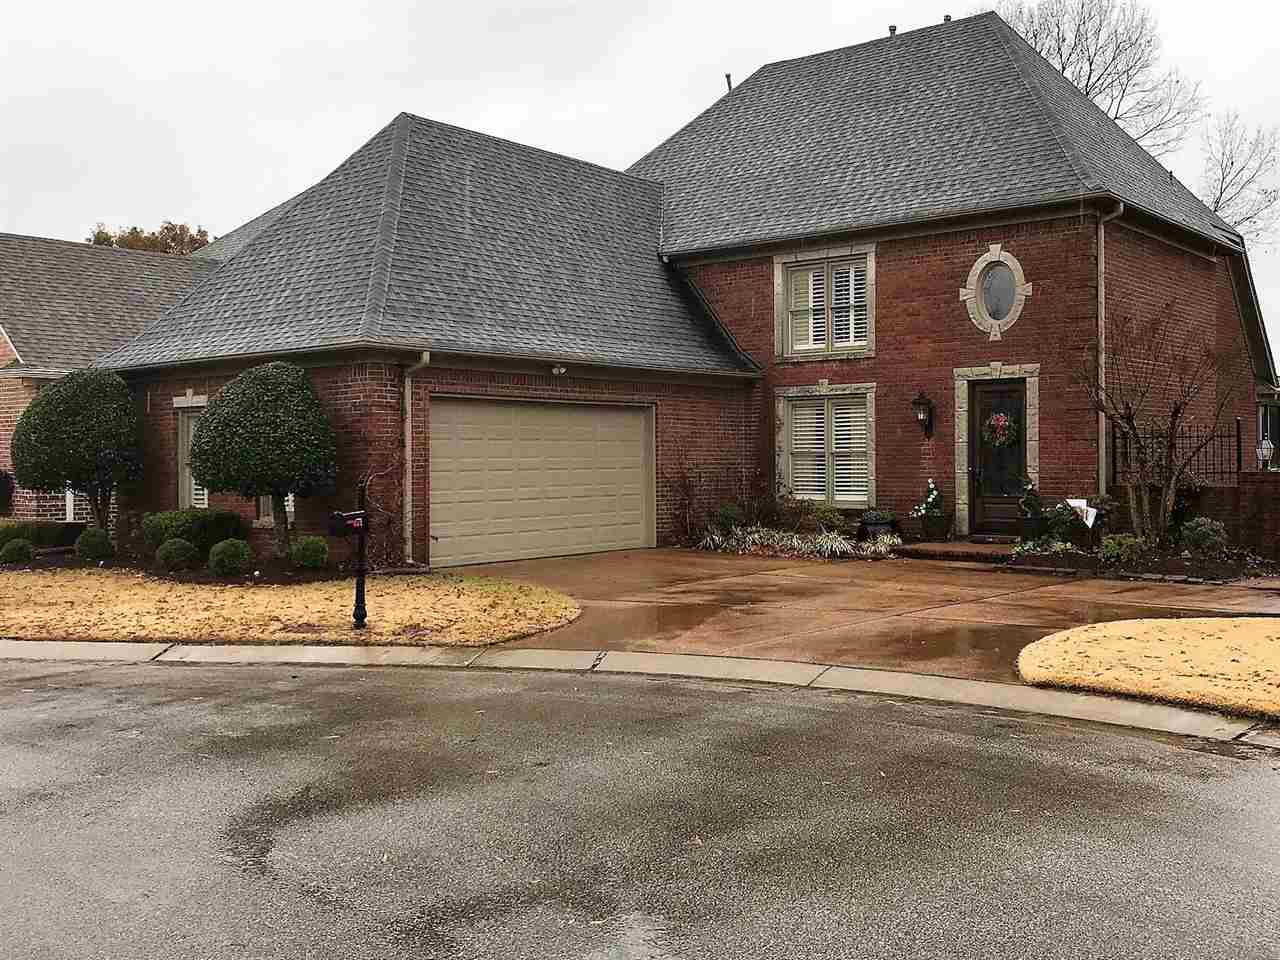 Property for sale at 671 W Warwick Oaks Ln W, Collierville,  TN 38017